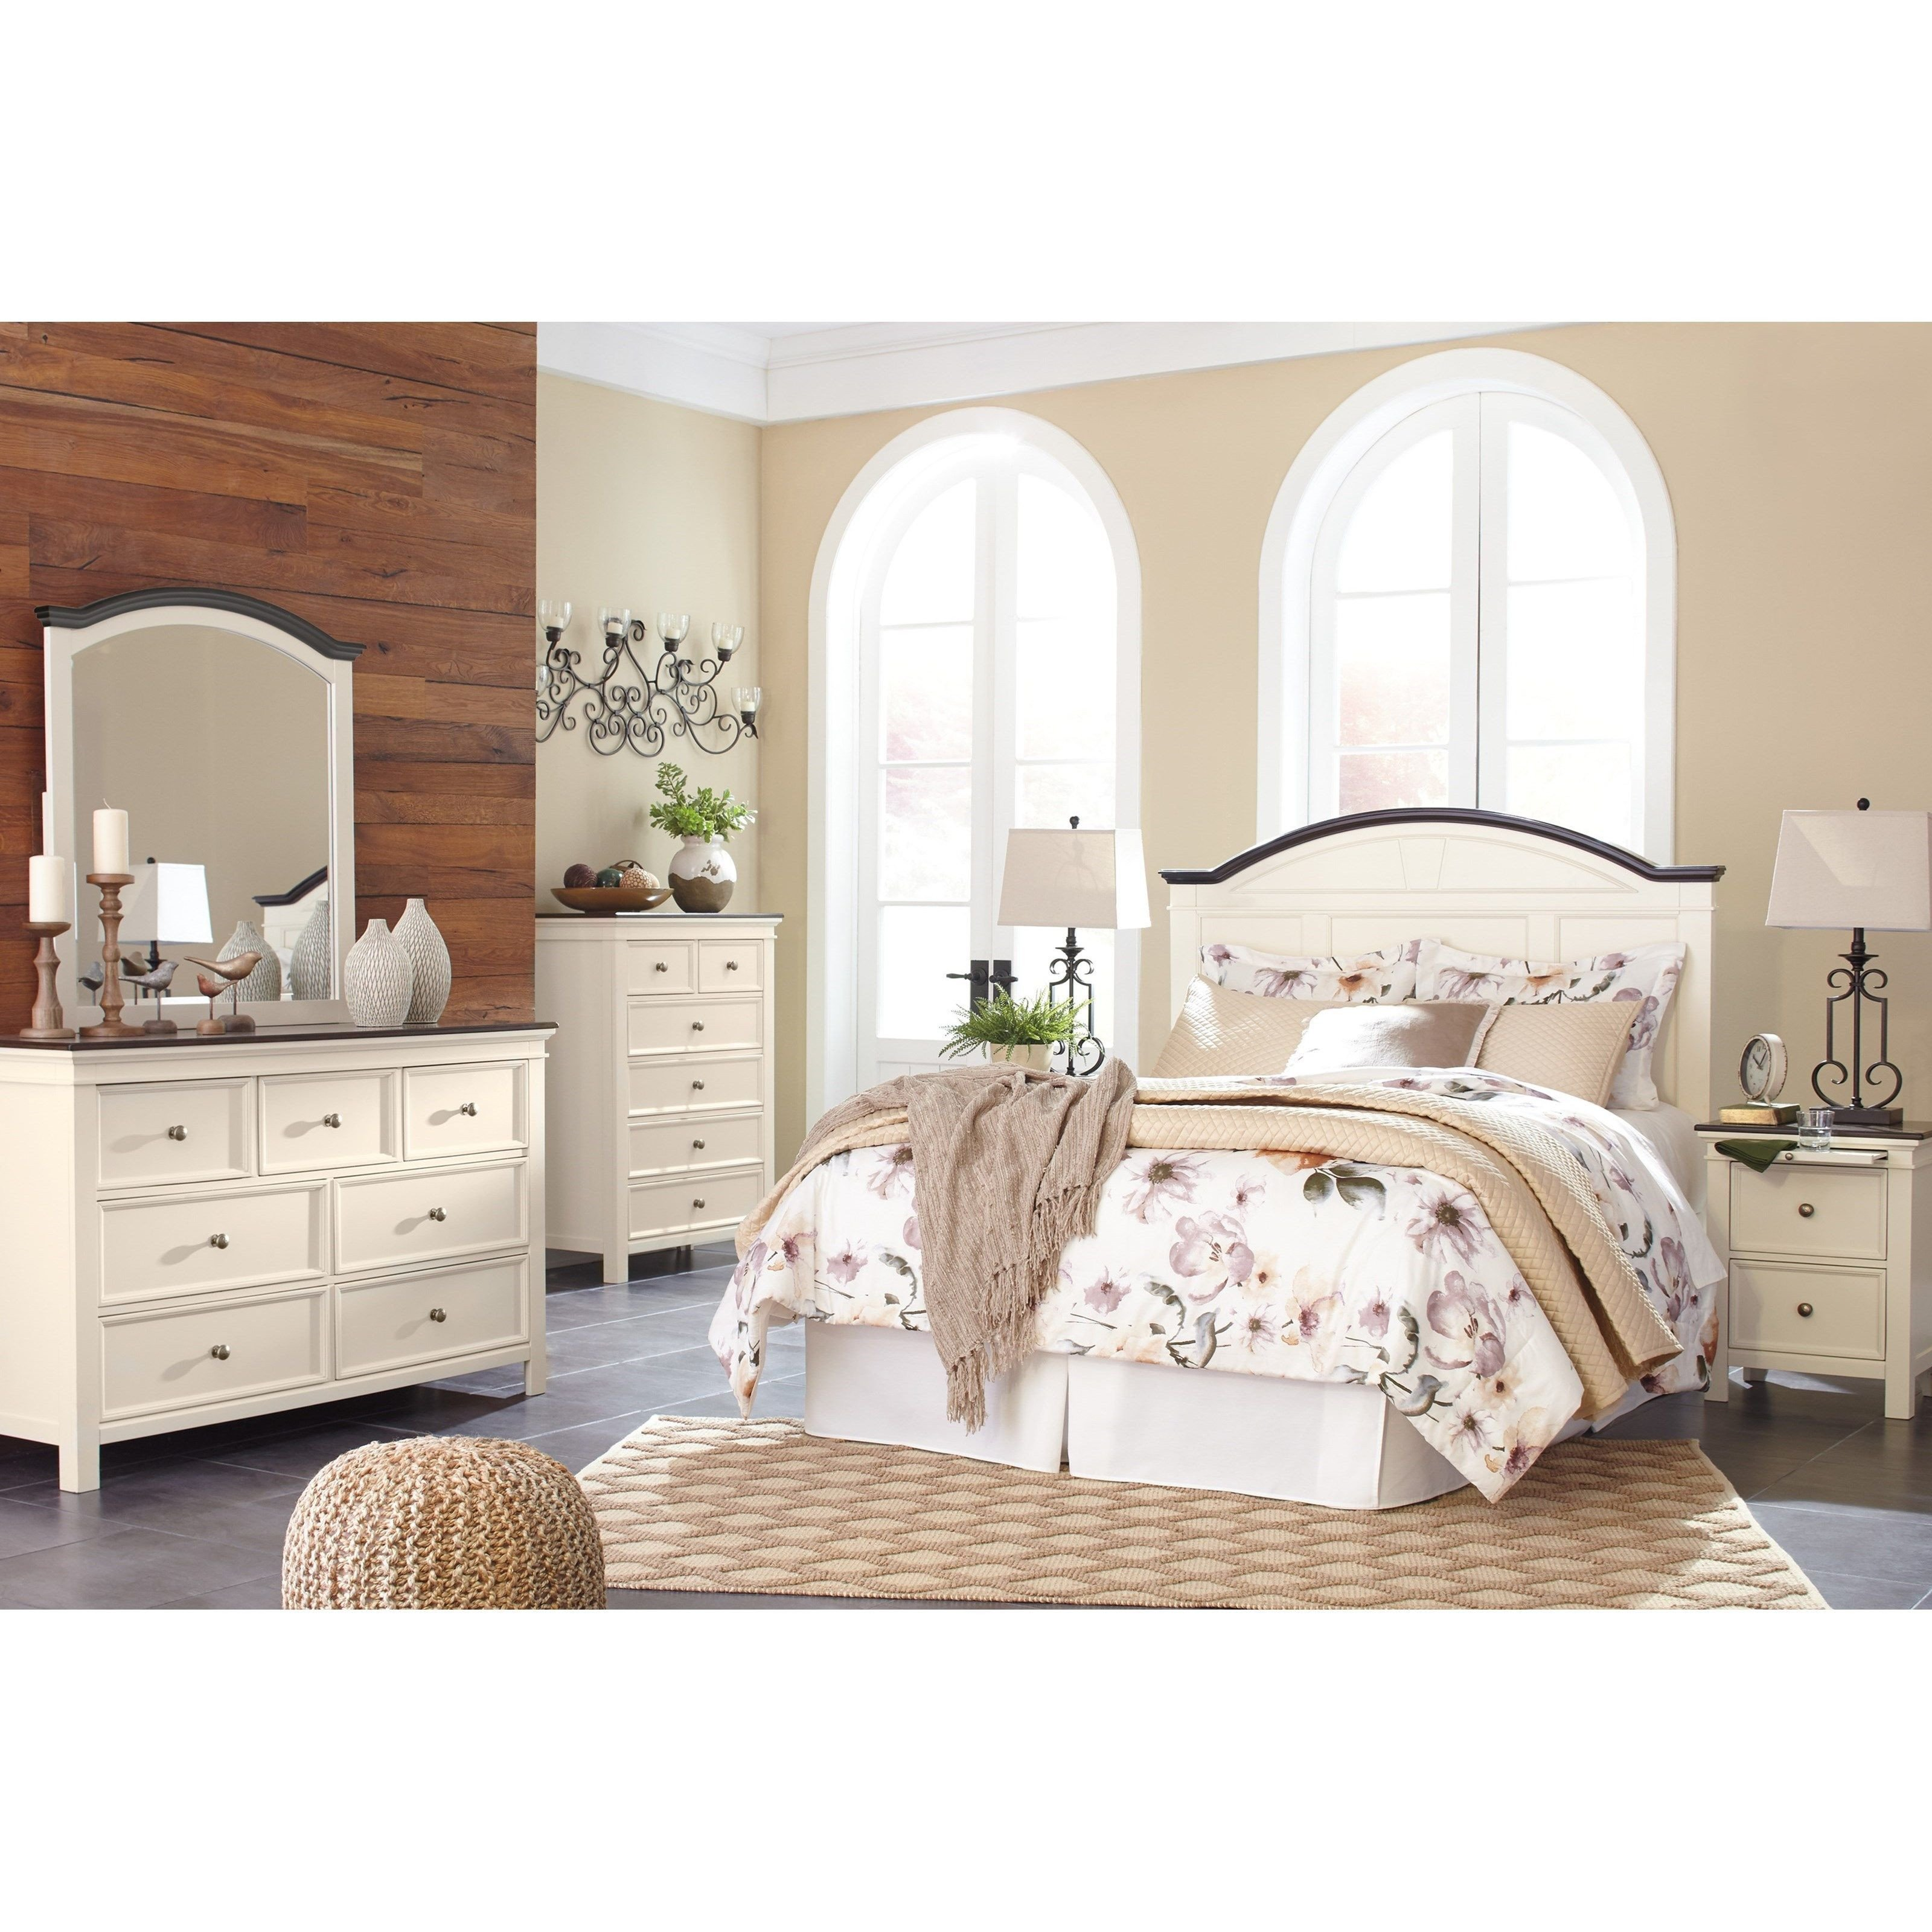 Complete Queen Bedroom Set Inspirational Woodanville Queen Bedroom Group by Signature Design by